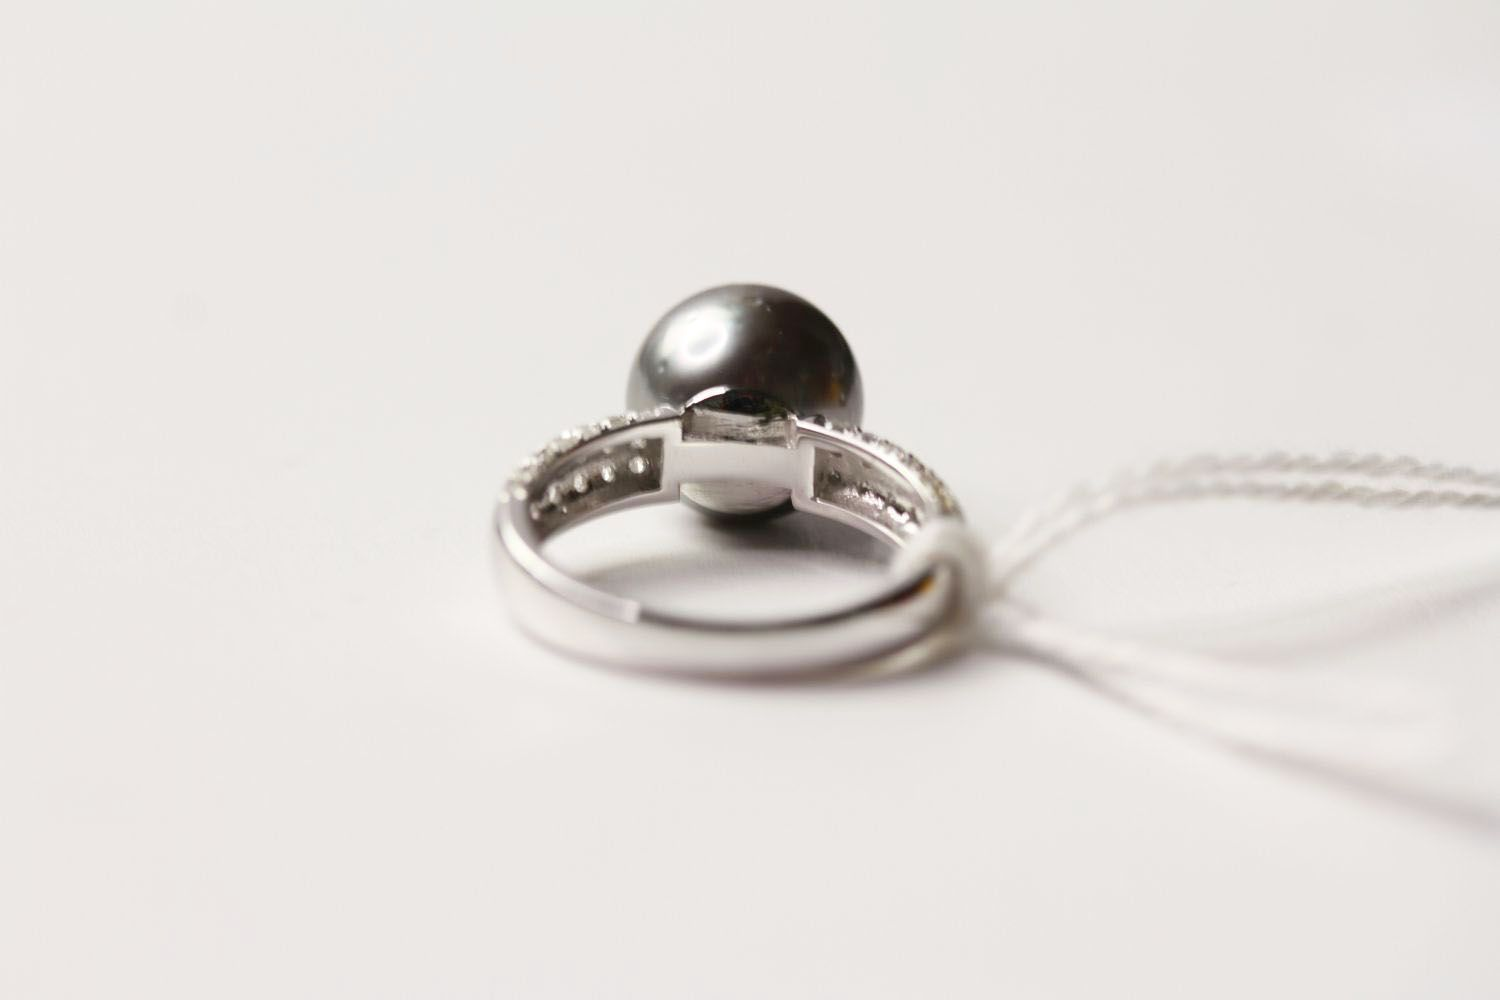 Tahitian Pearl & Diamond Ring, set with a cultured tahitian pearl, 56 round brilliant cut diamonds - Image 2 of 3